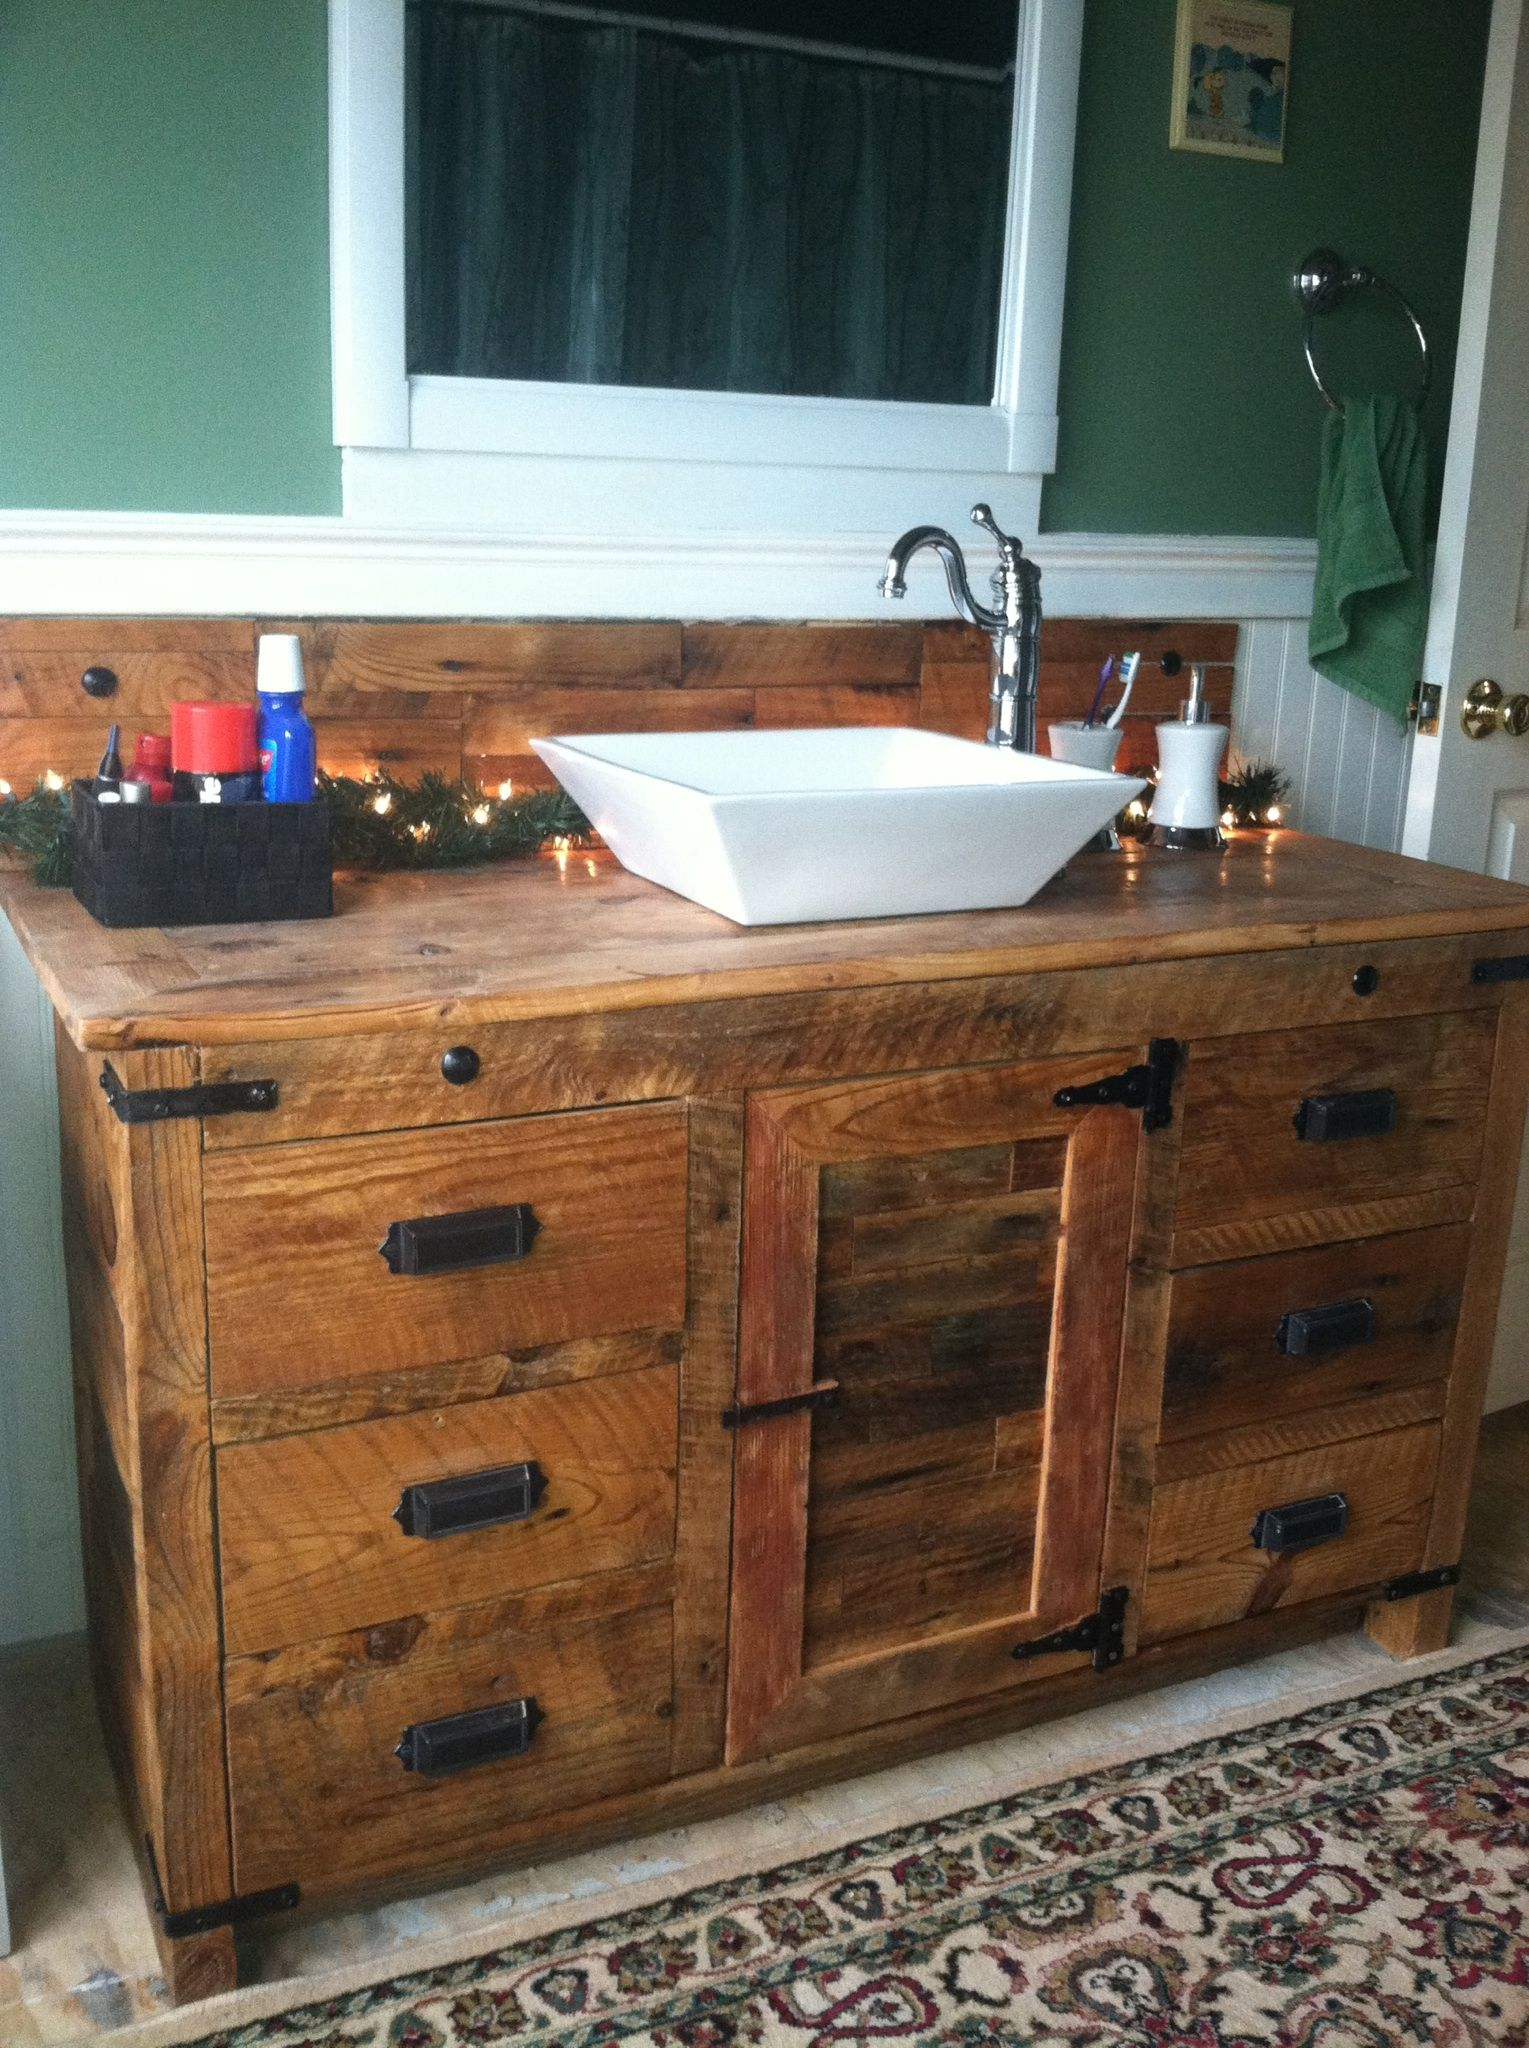 Barnwood Vanity With Vessel Sink Bathroom Vanity Designs Bathroom Vanity Decor Best Bathroom Vanities